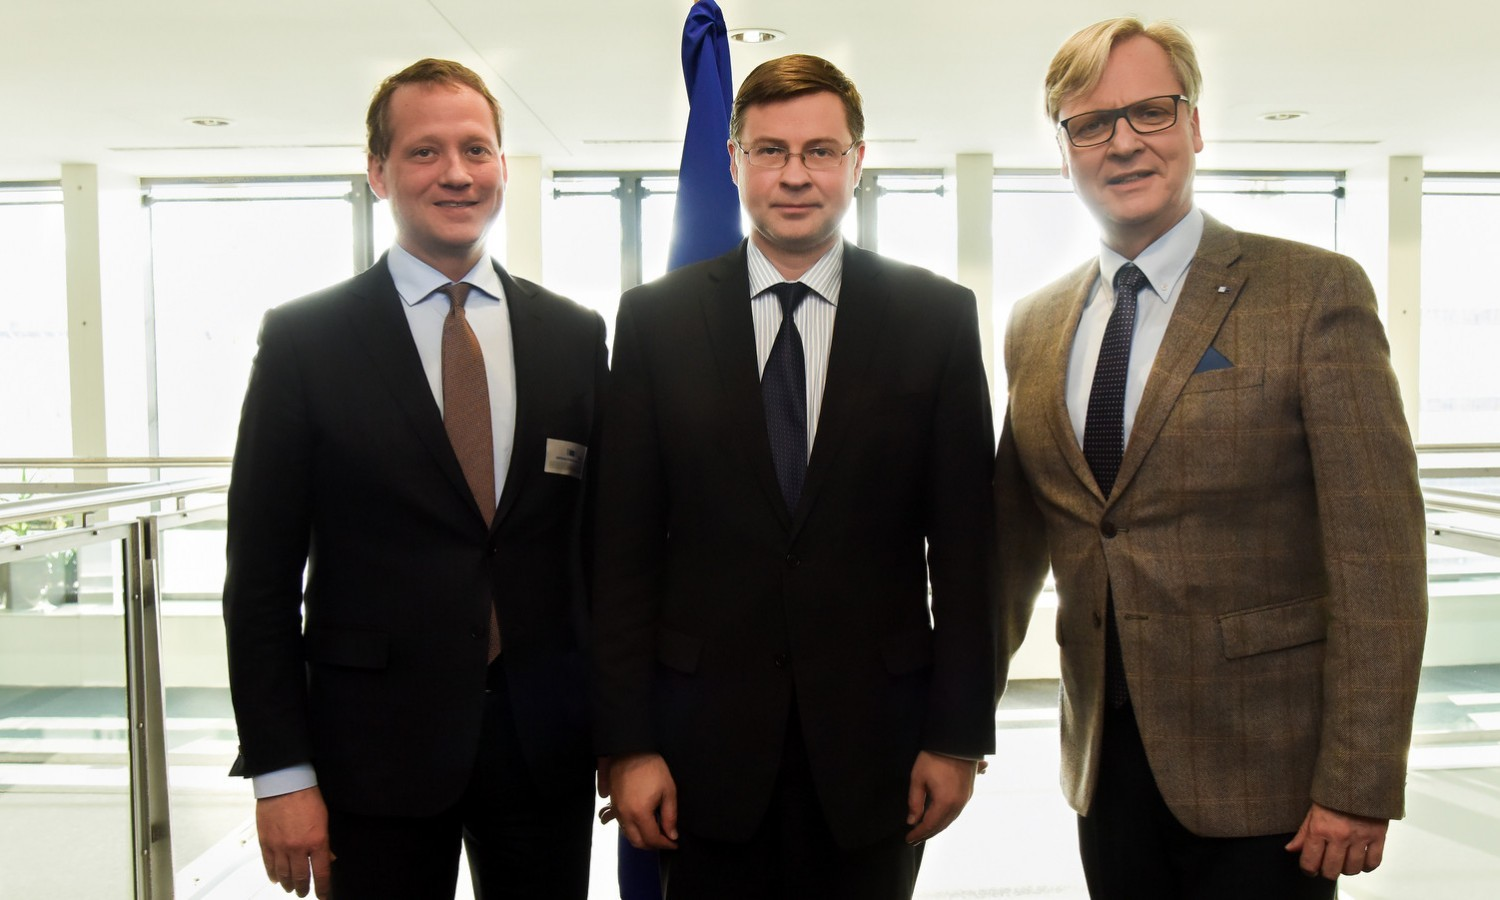 President of Association of German Chambers of Commerce and Industry (DIHK) meeting Valdis Dombrovskis on February 29, 2016 / ec.europa.eu